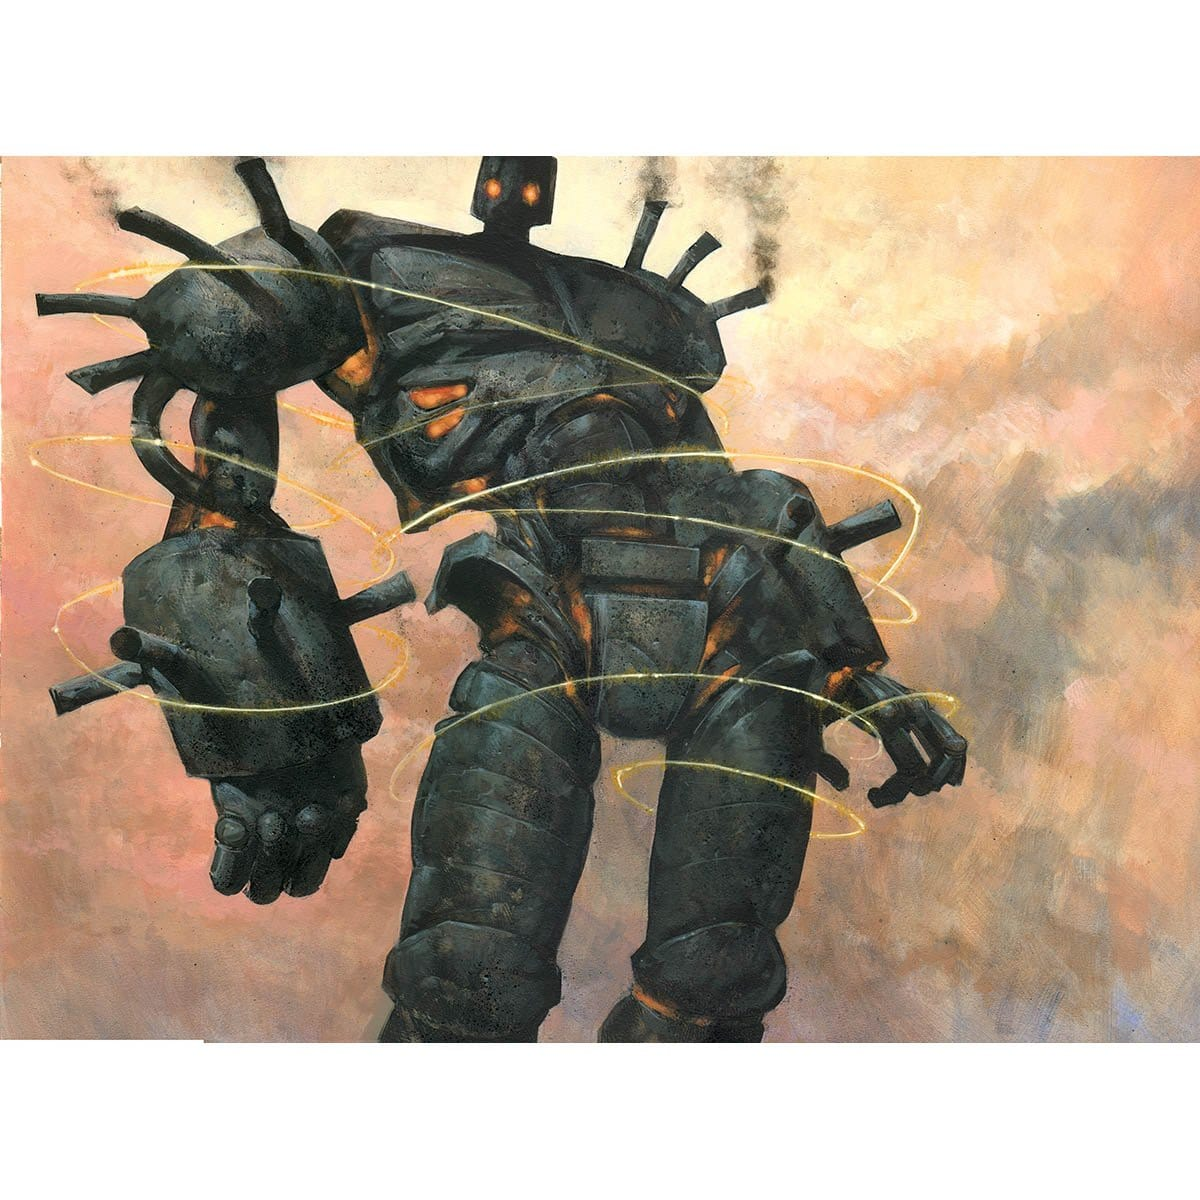 Darksteel Colossus Print - Print - Original Magic Art - Accessories for Magic the Gathering and other card games